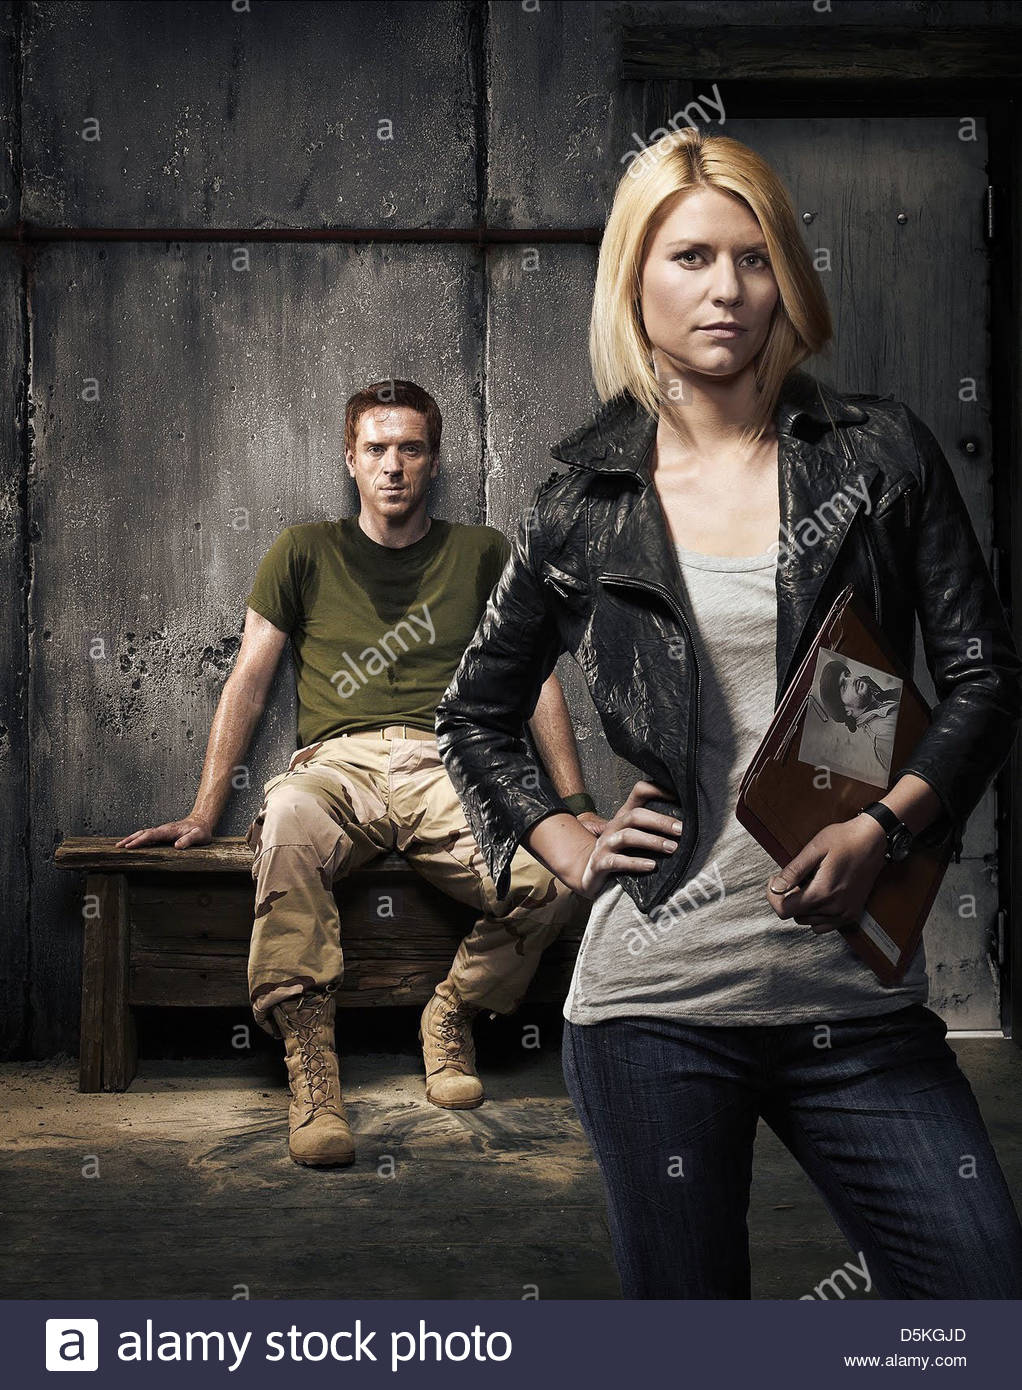 DAMIAN LEWIS & CLAIRE DANES HOMELAND (2011) - Stock Image